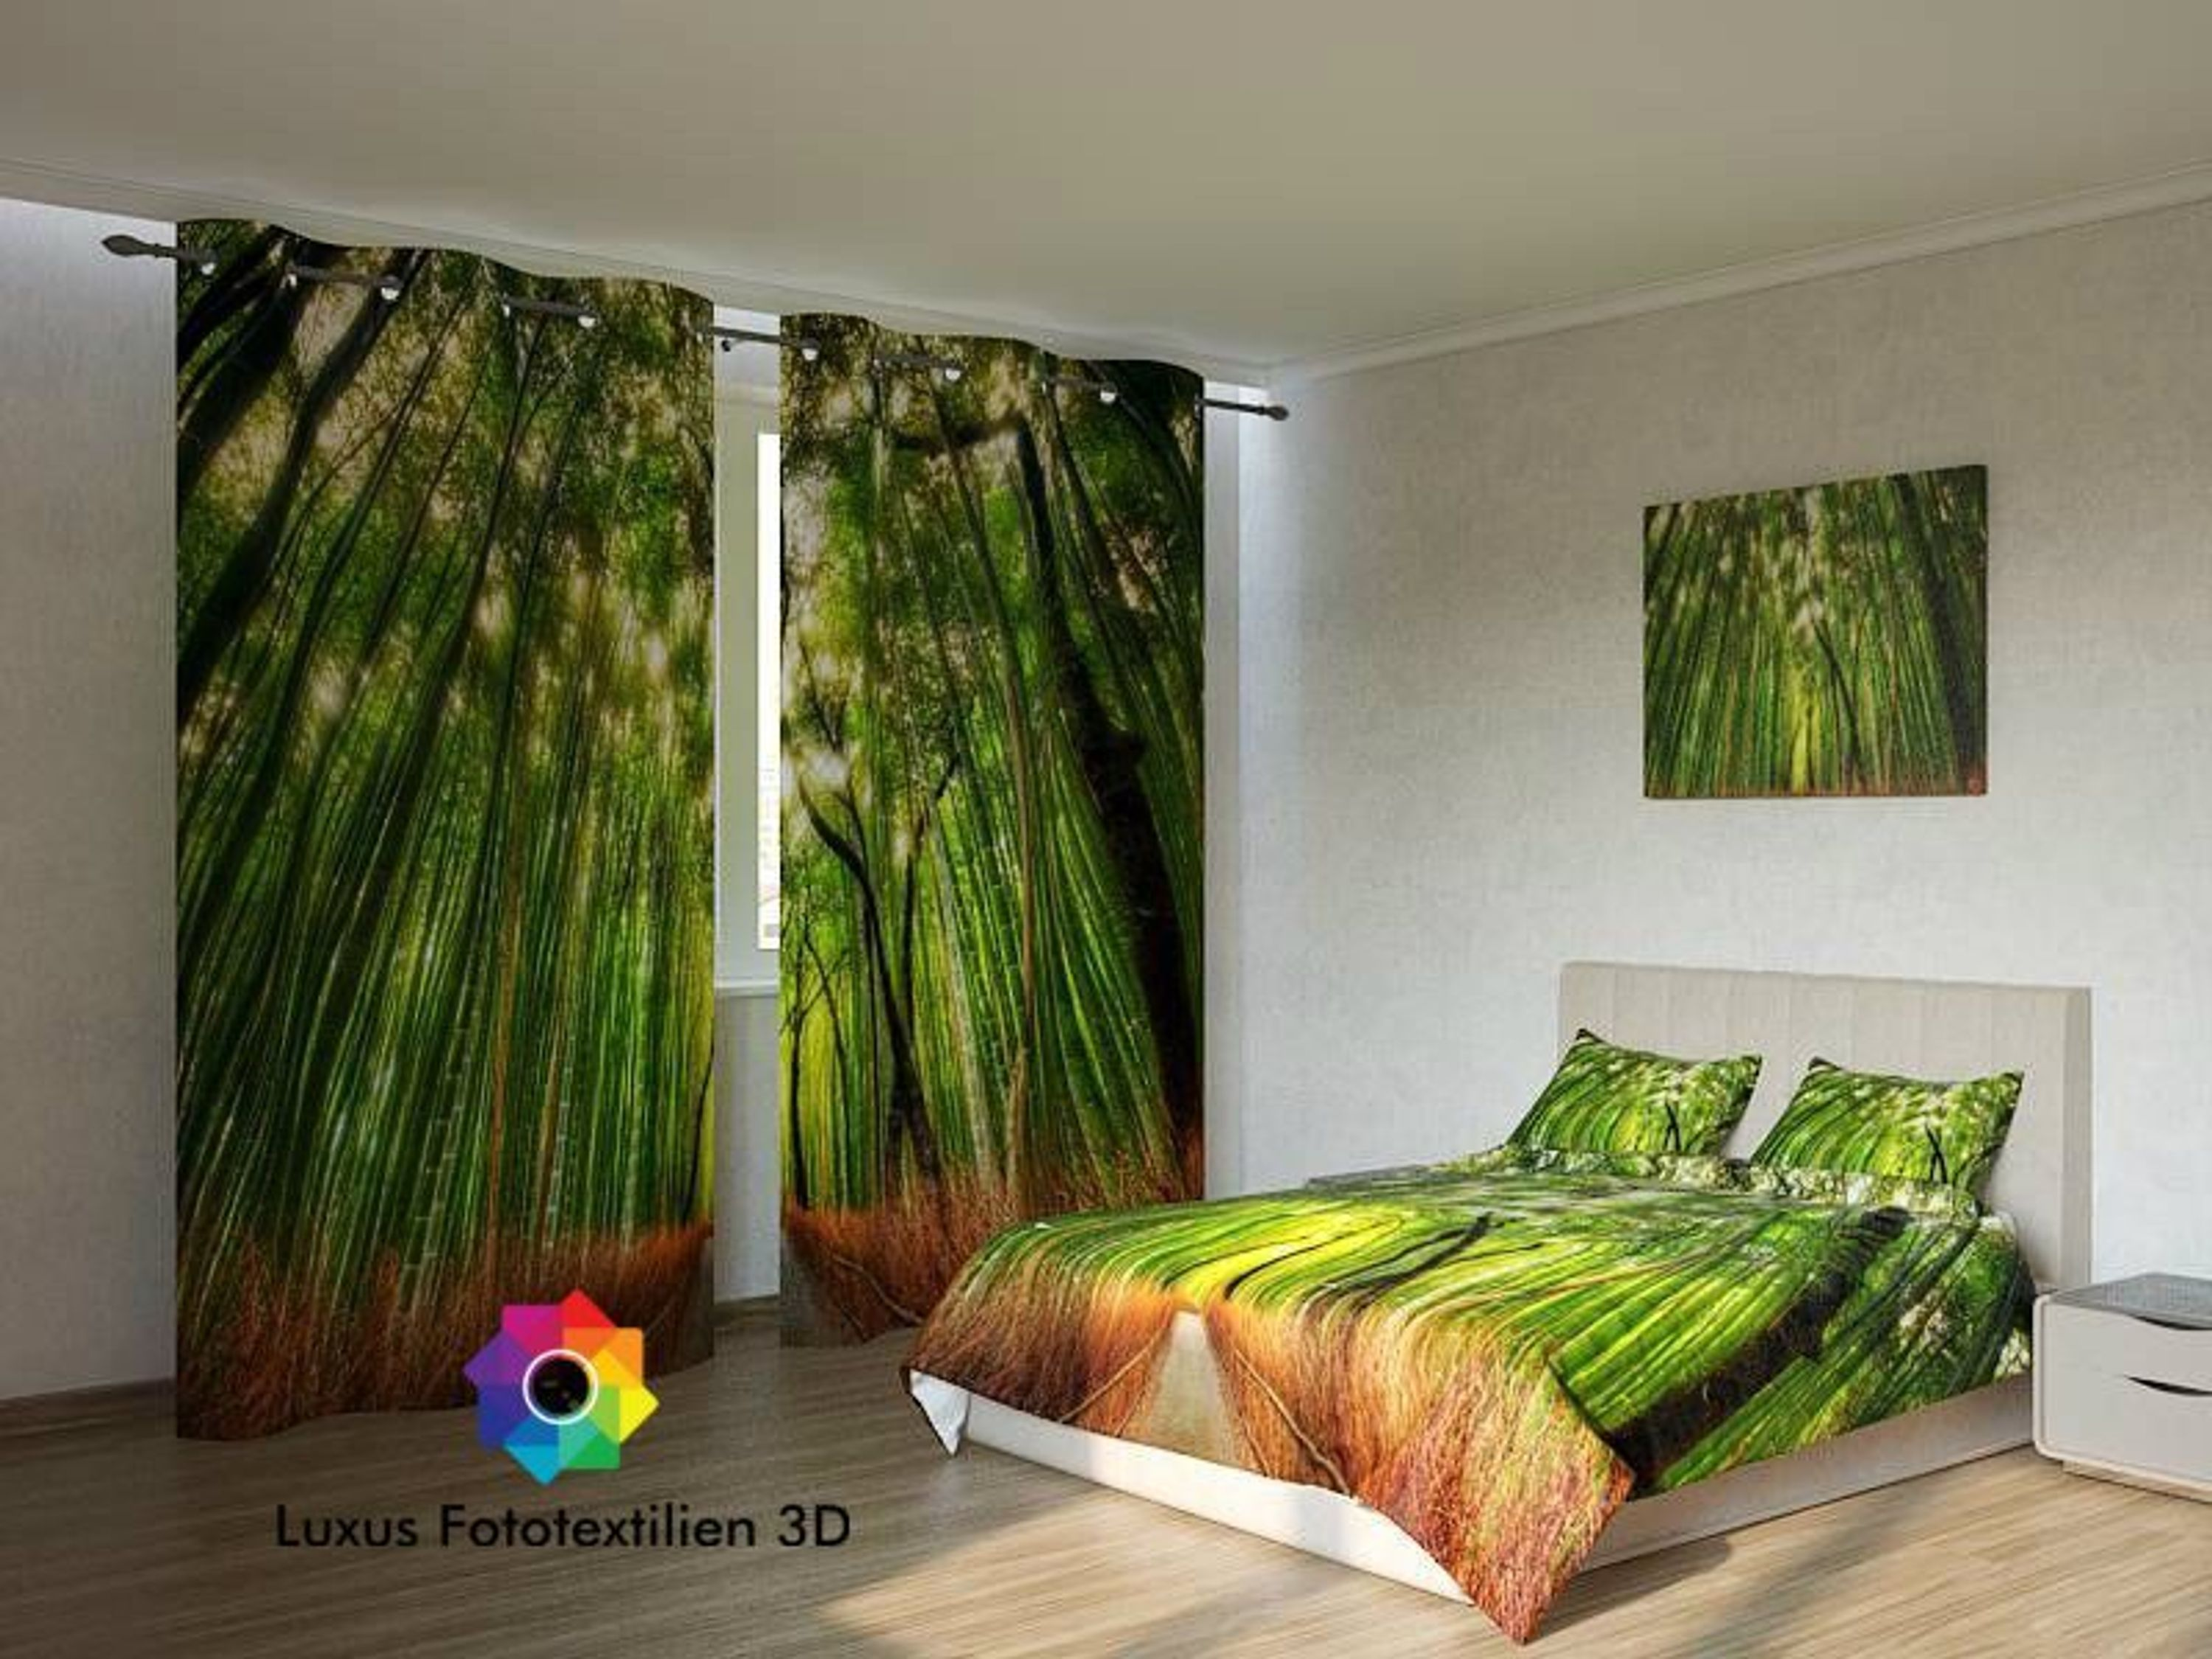 fotogardine wald foto vorhang gardinen in luxus fotodruck 3d auf ma kaufen bei. Black Bedroom Furniture Sets. Home Design Ideas